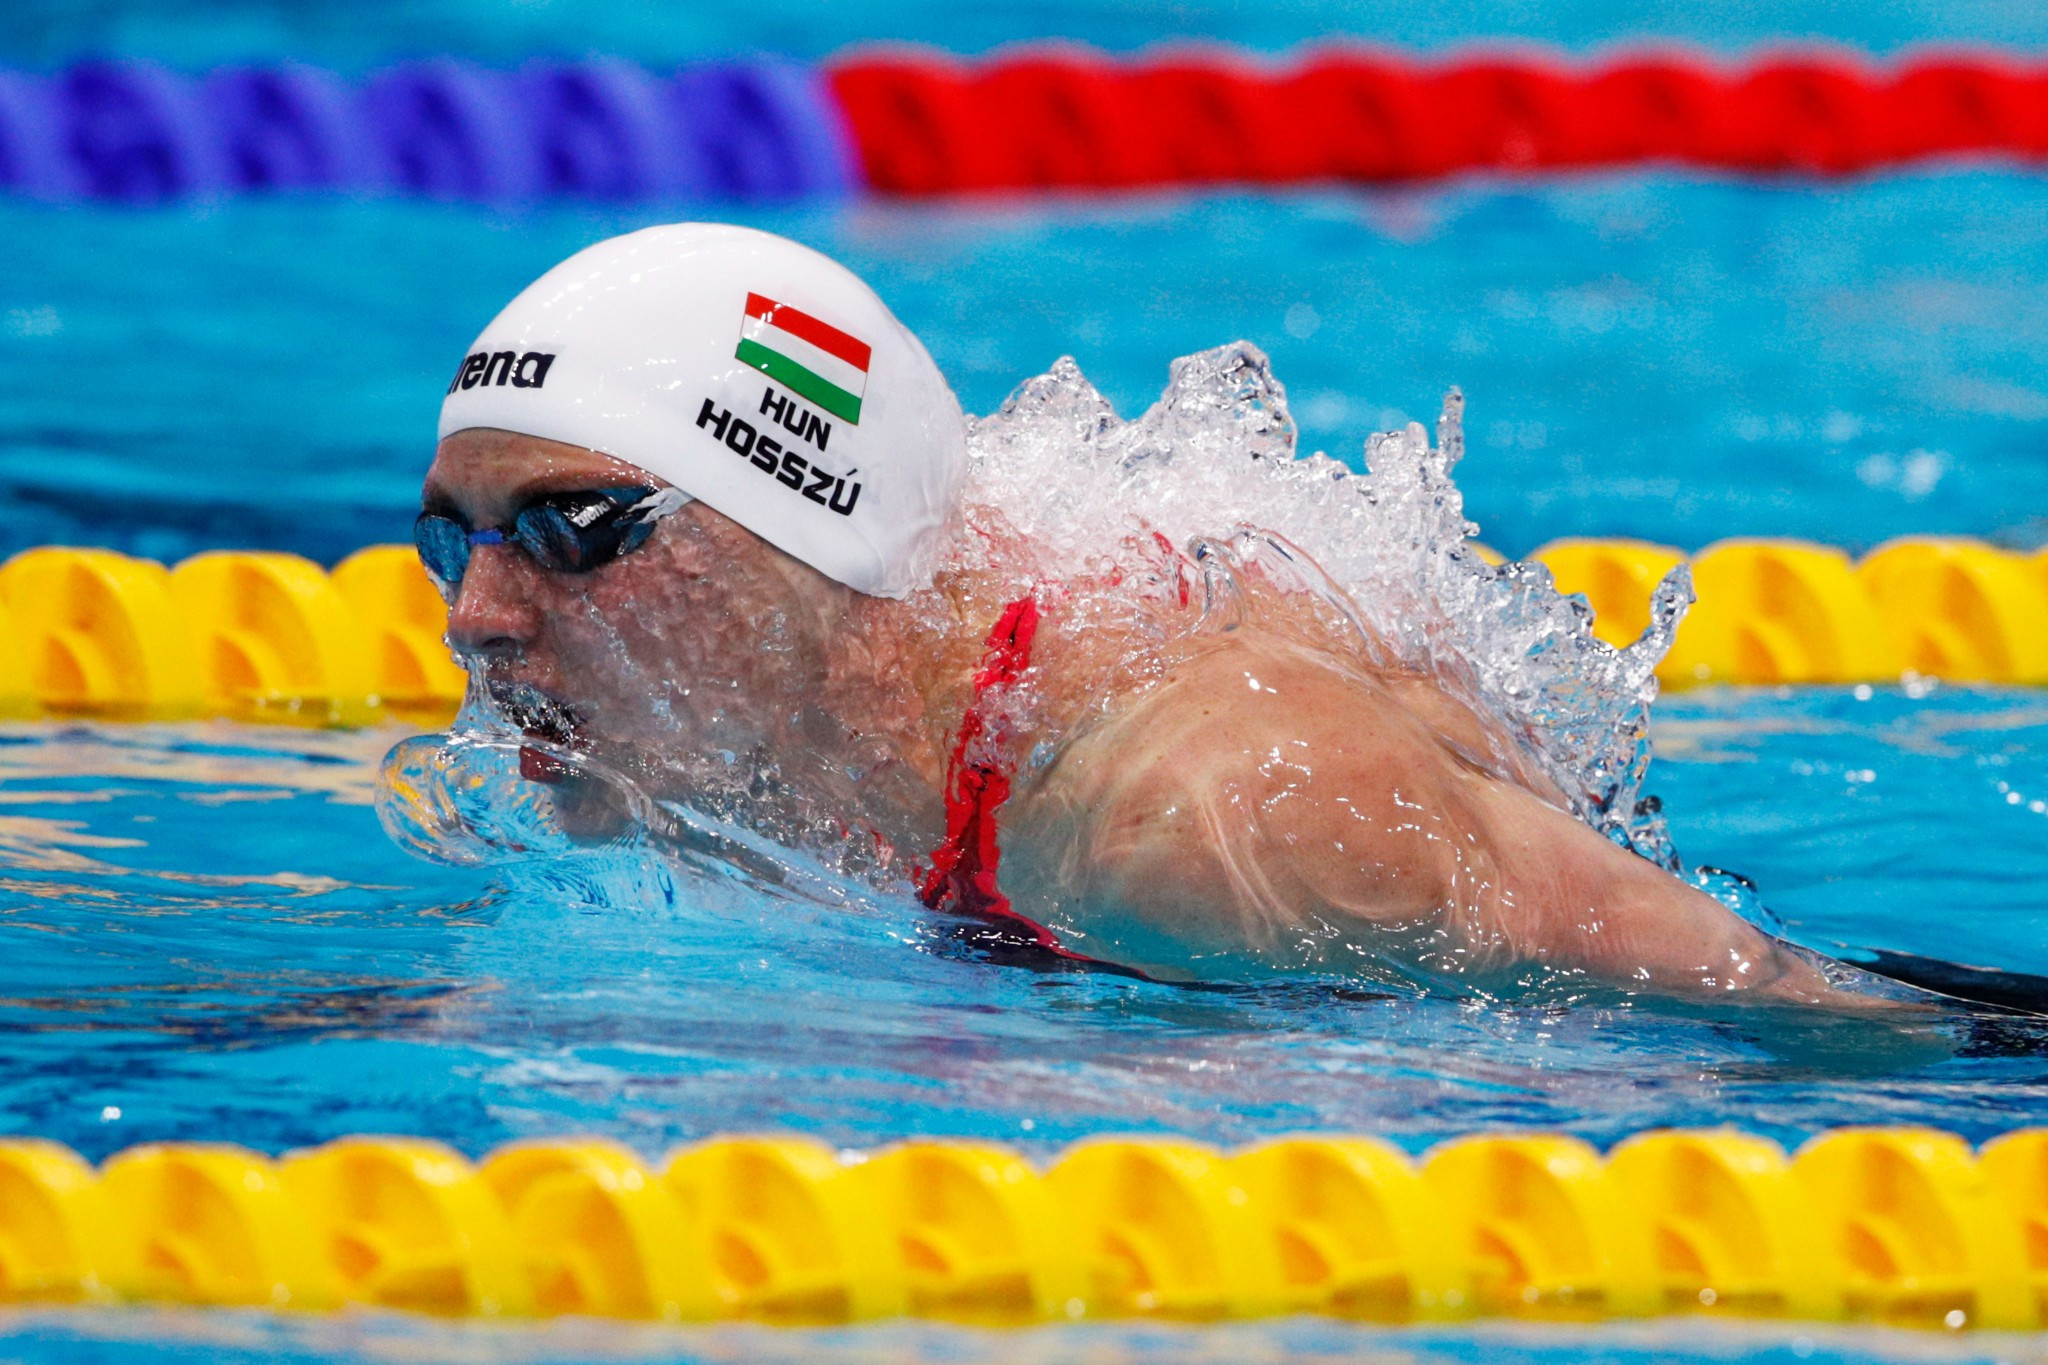 Katinka Hosszu won backstroke and medley titles in Moscow ©Getty Images